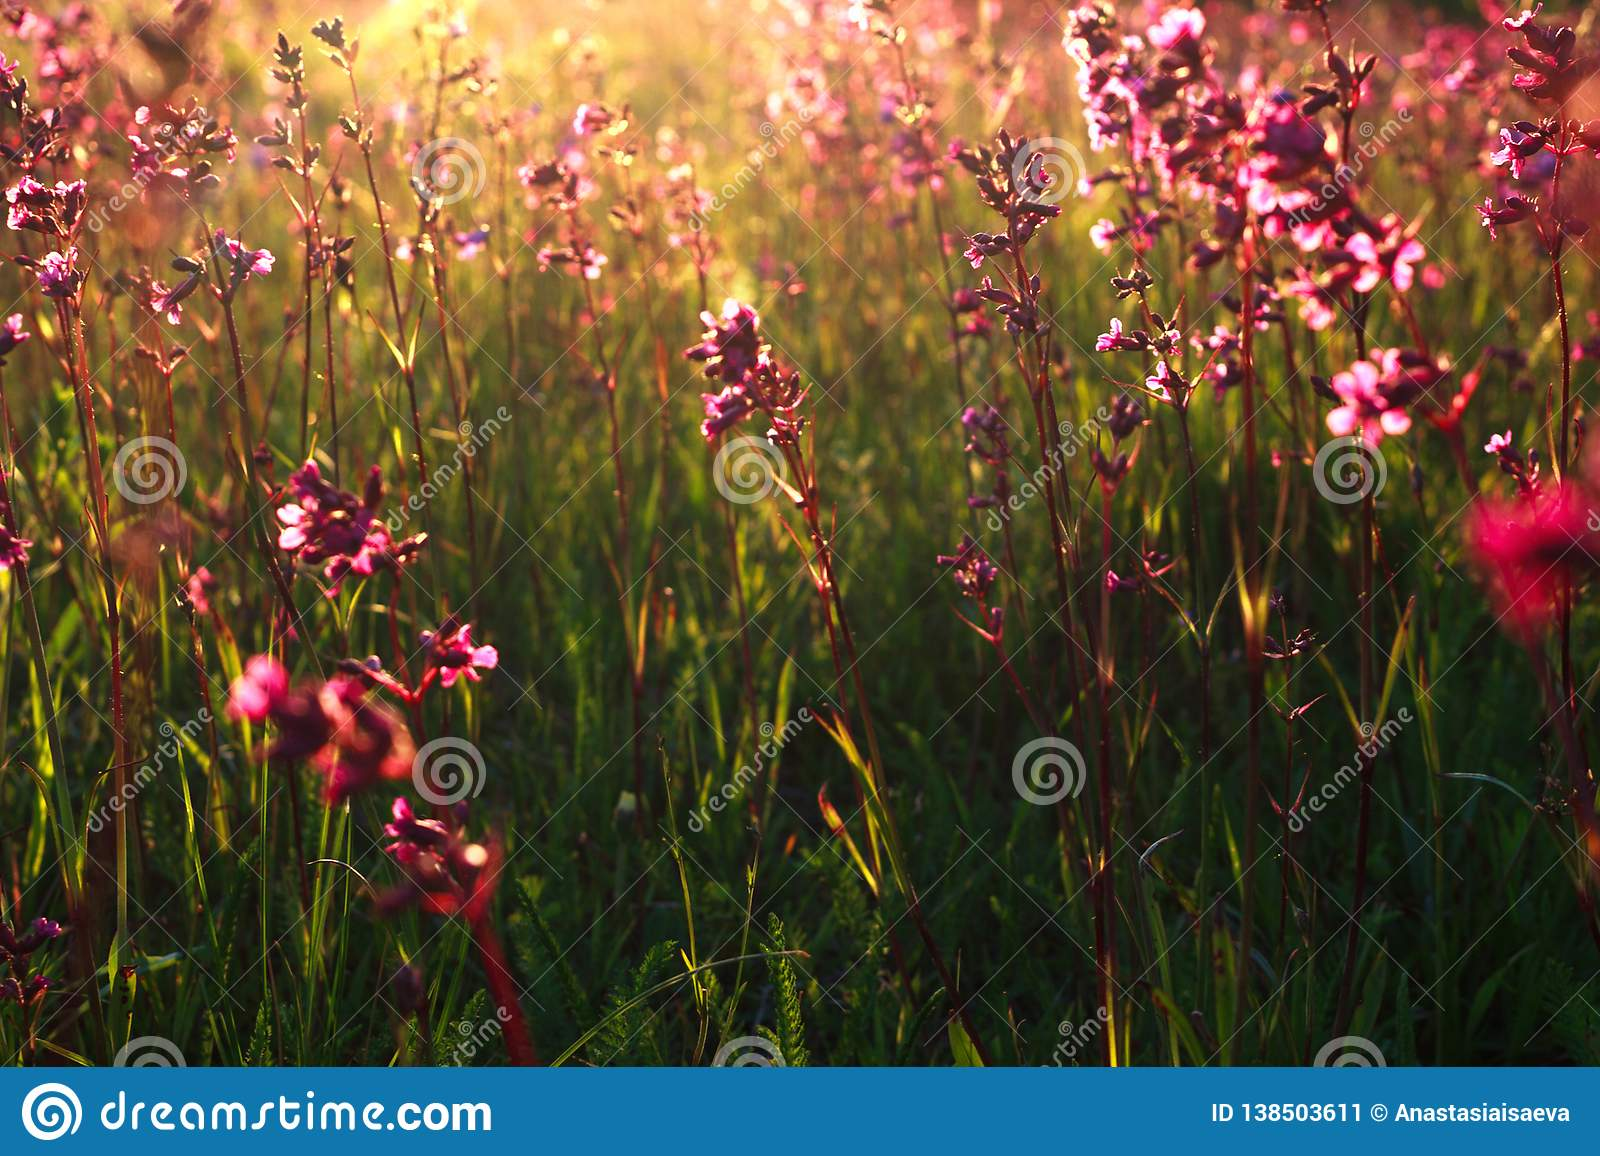 Rose flowers closeup, summer floral abstract background, sunset rays